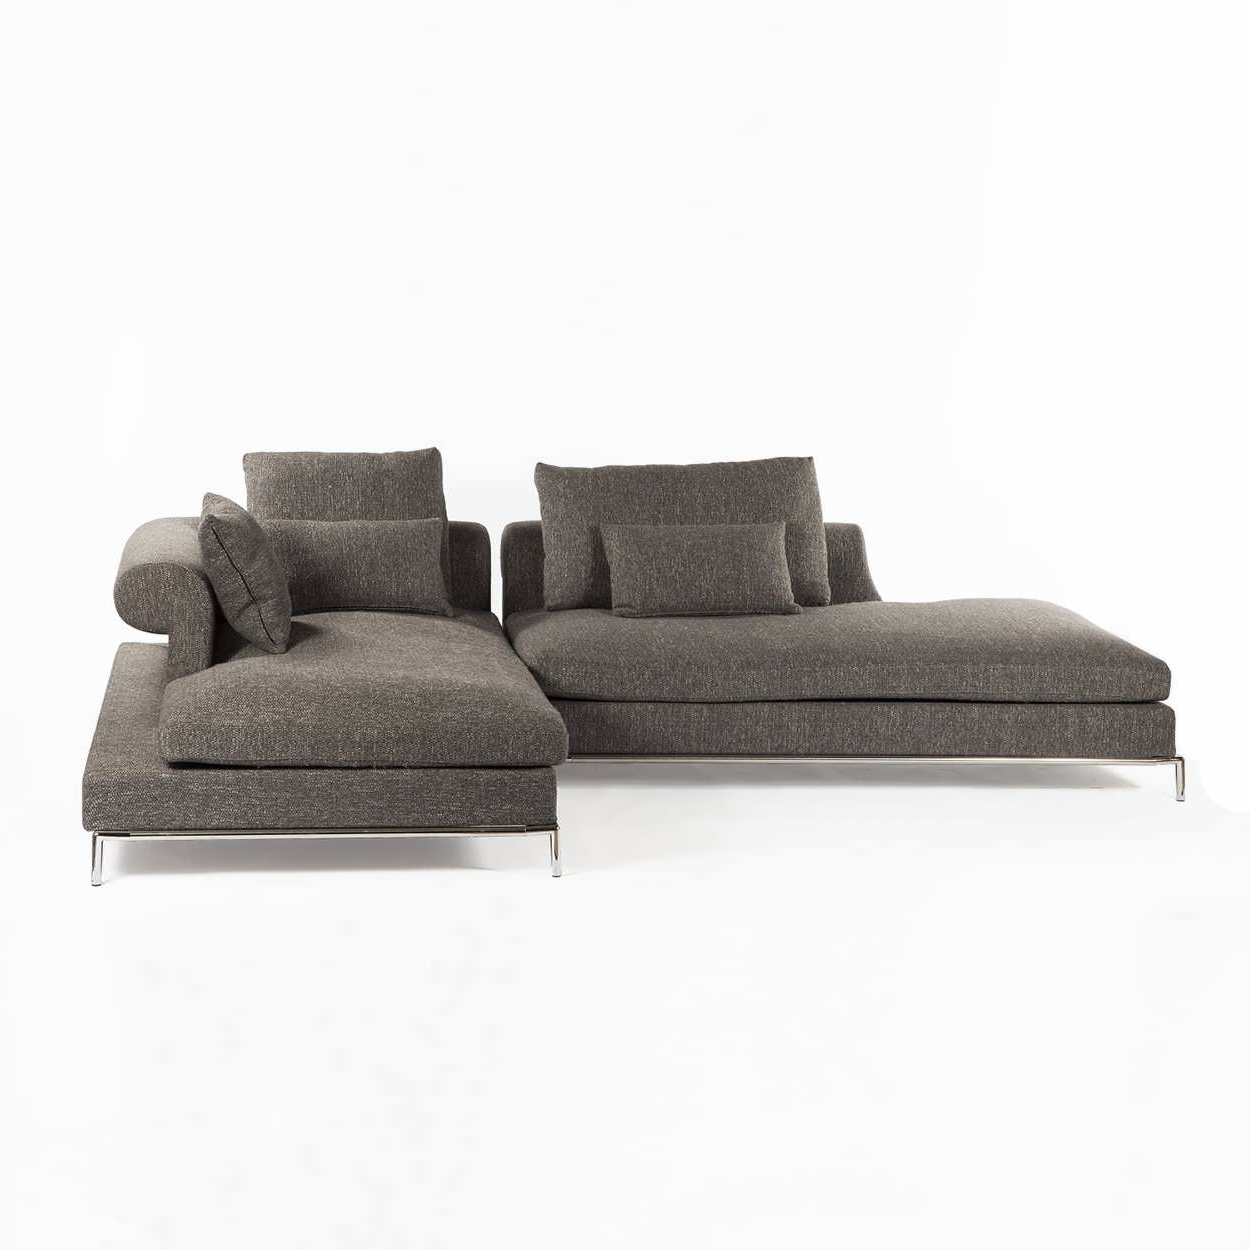 Preferred Modern Chaise Sofas Within Sofa : Large Sectional Sofas L Shaped Couch Leather Couch With (View 14 of 15)